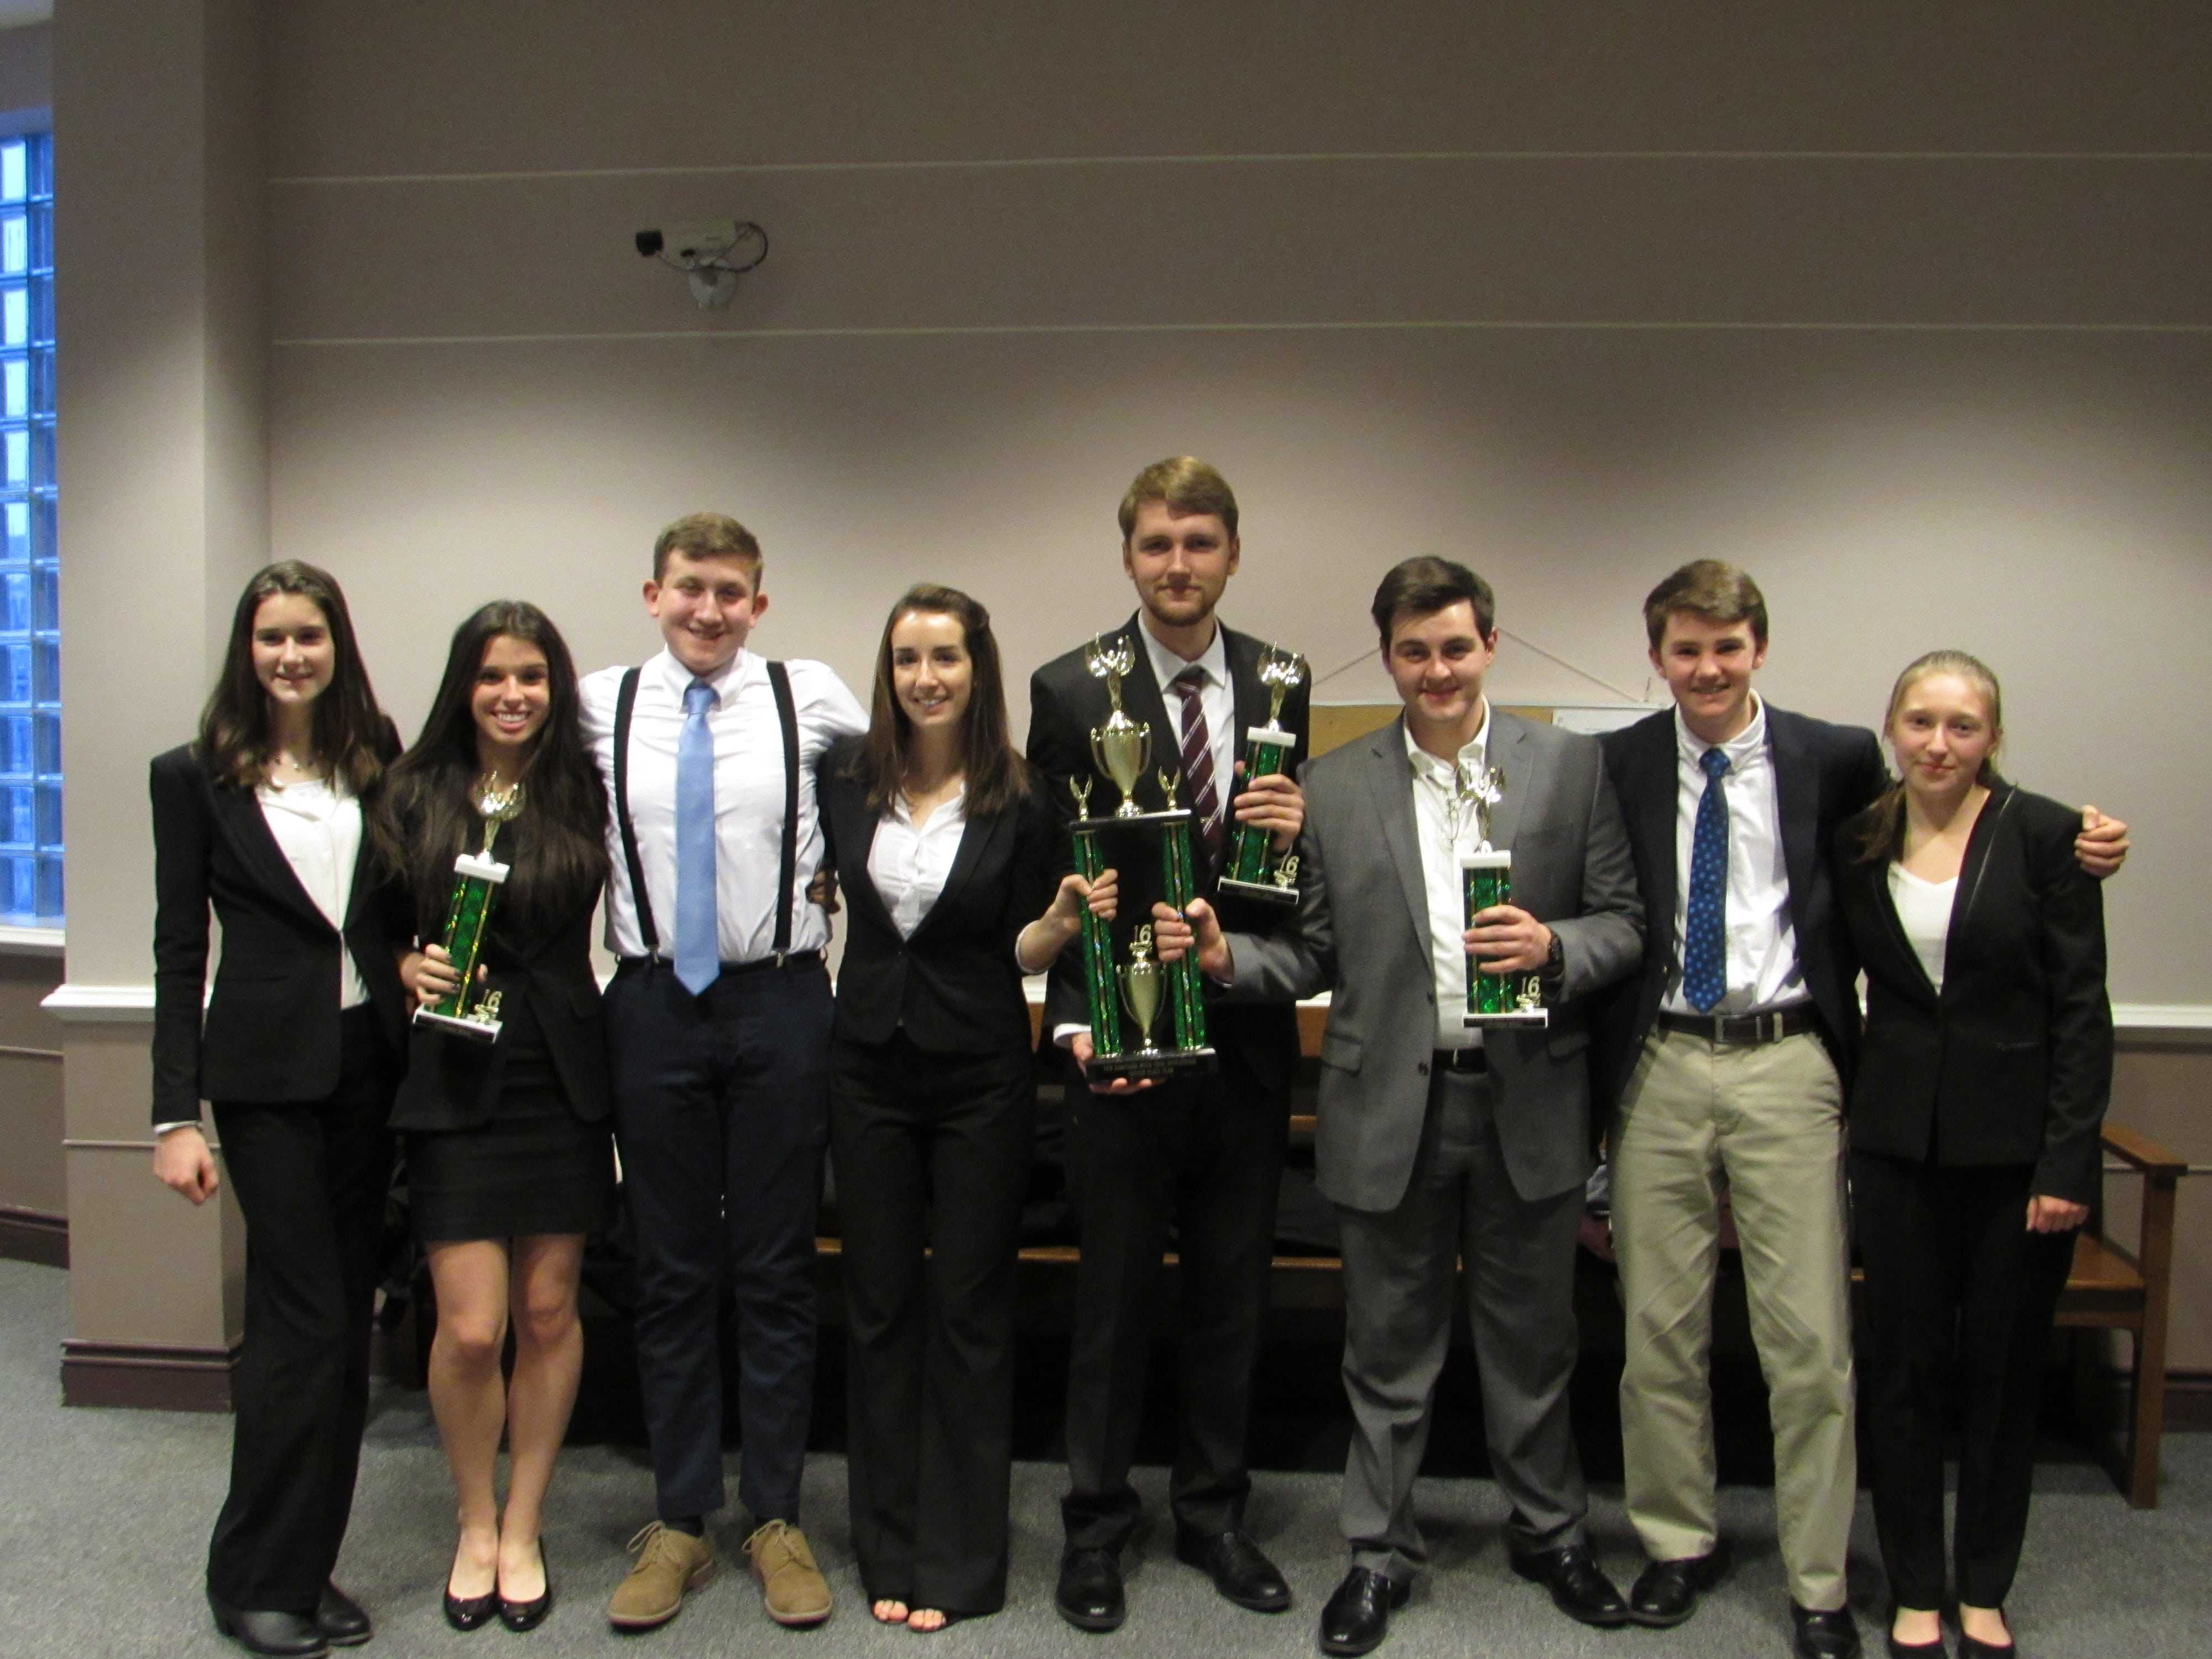 The varsity mock trial team after the Bishop Guertin invitational meet